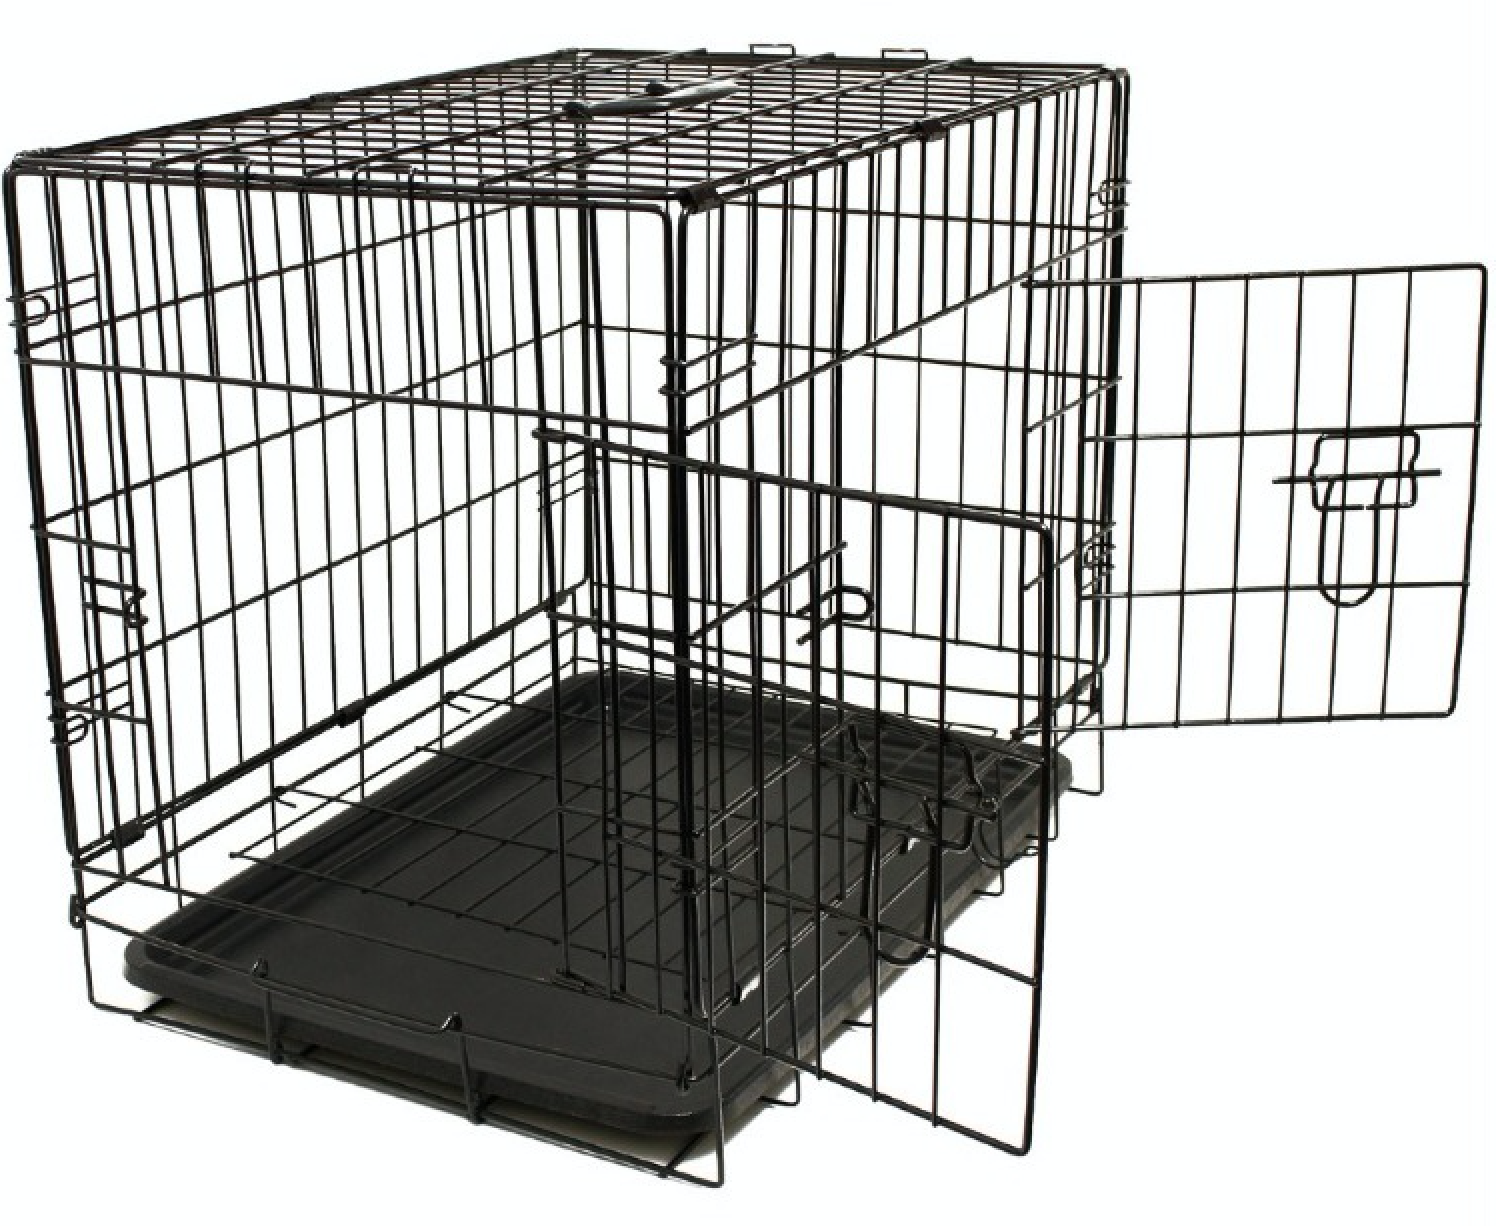 Folding Metal Dog Cage By Mr Barker Puppy Training Crates 5 sizes 24-42 Inch 5